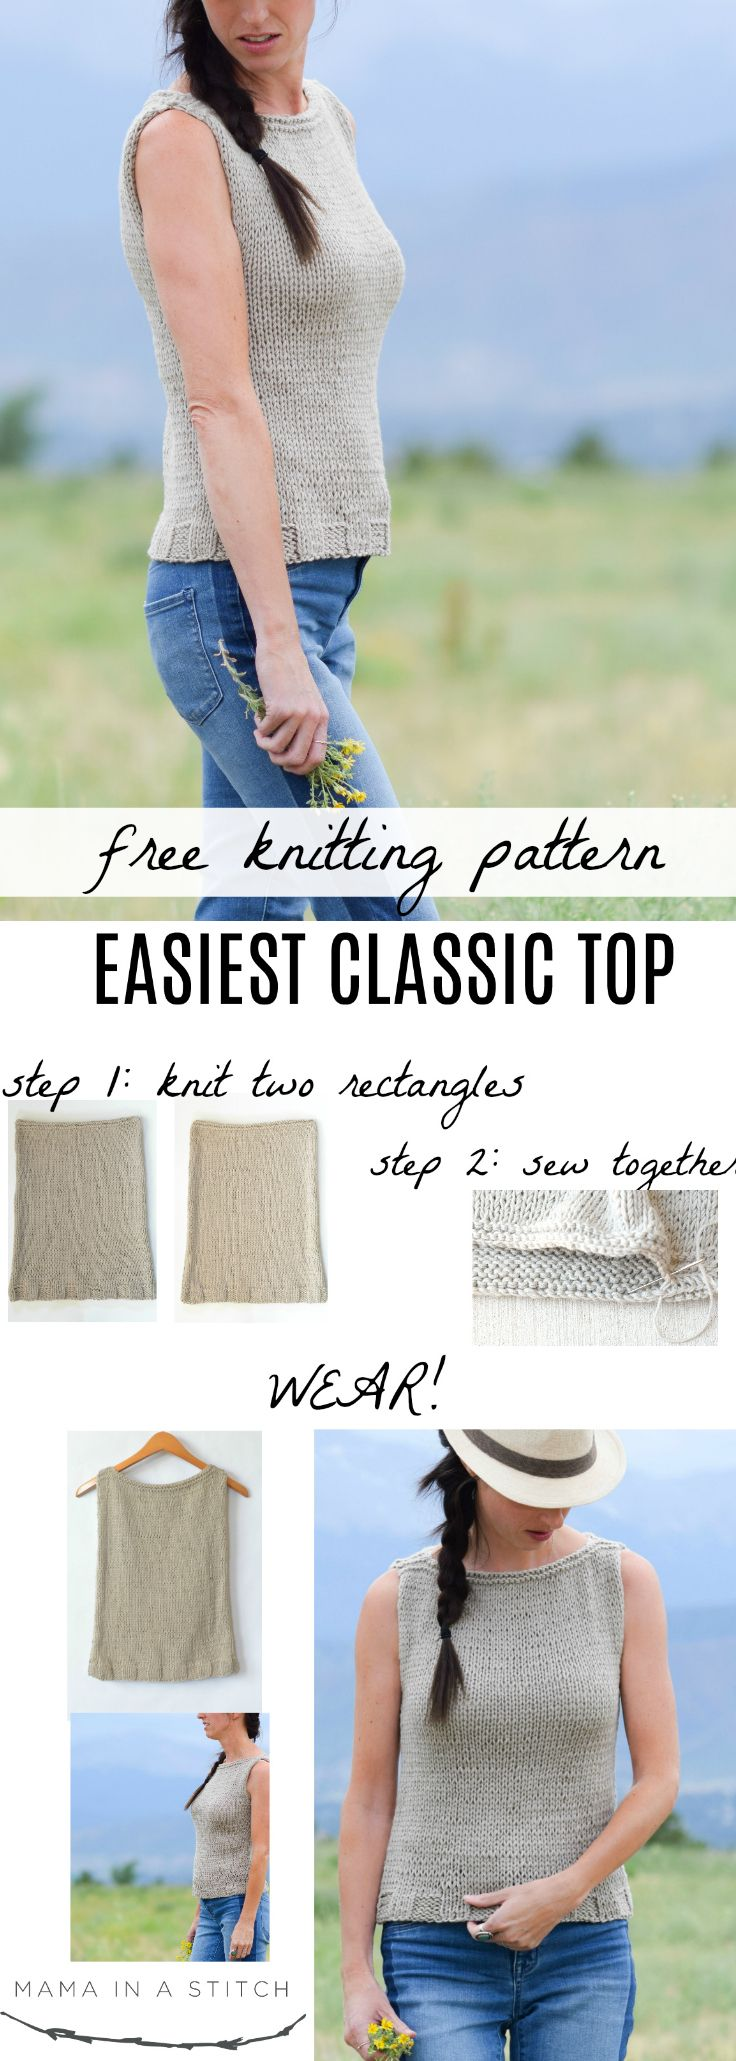 Easiest Classic Knit Top Pattern via @MamaInAStitch